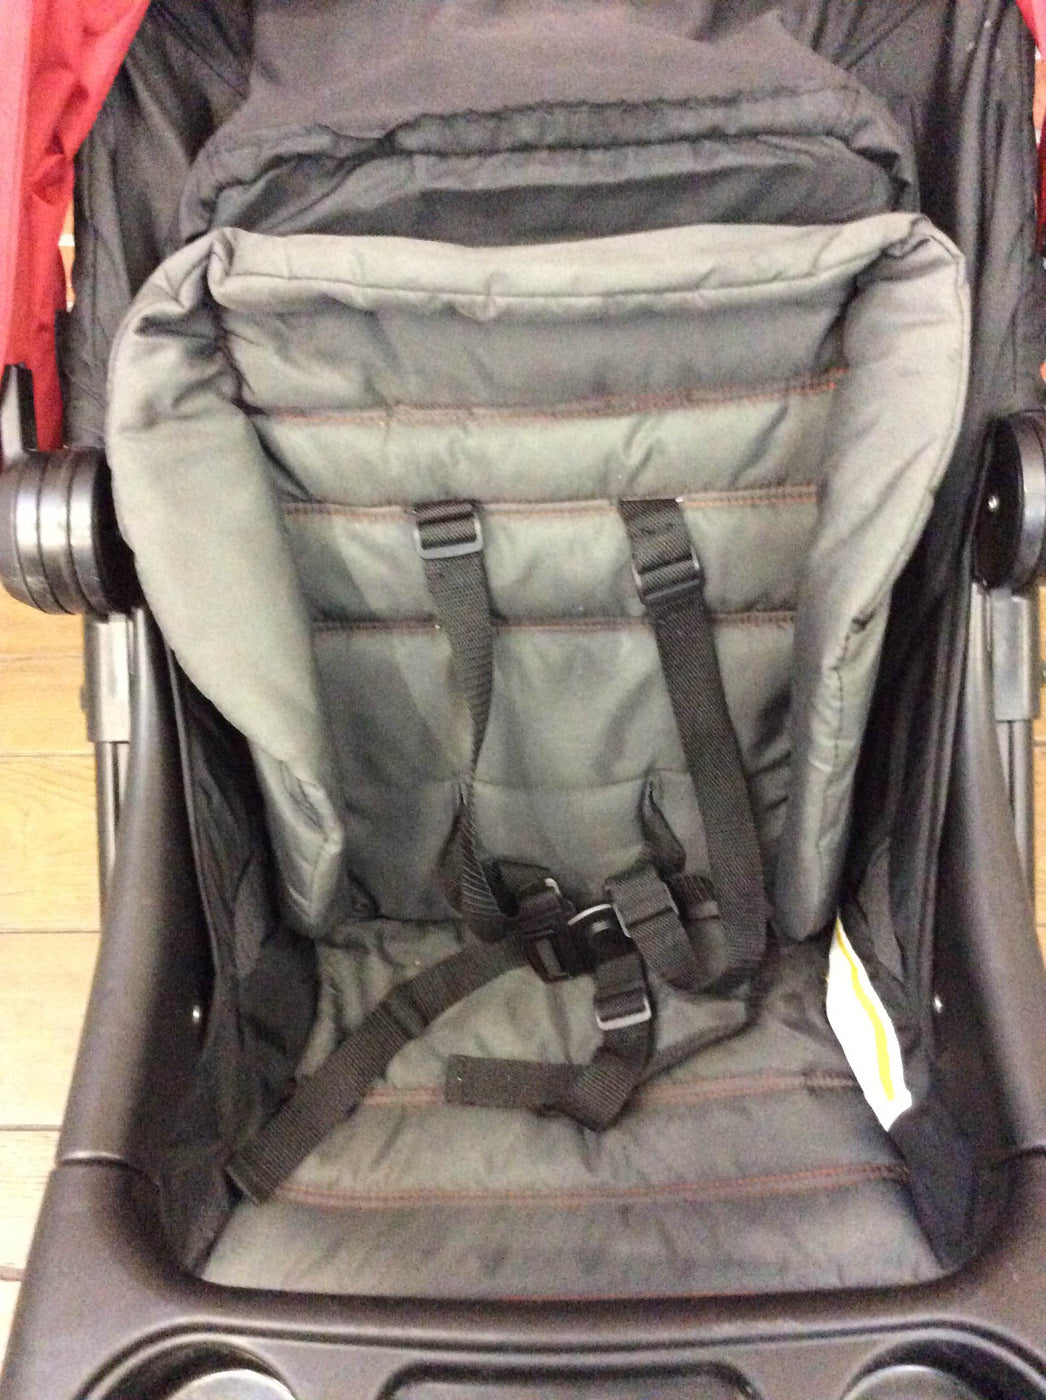 secondhand Standard Strollers